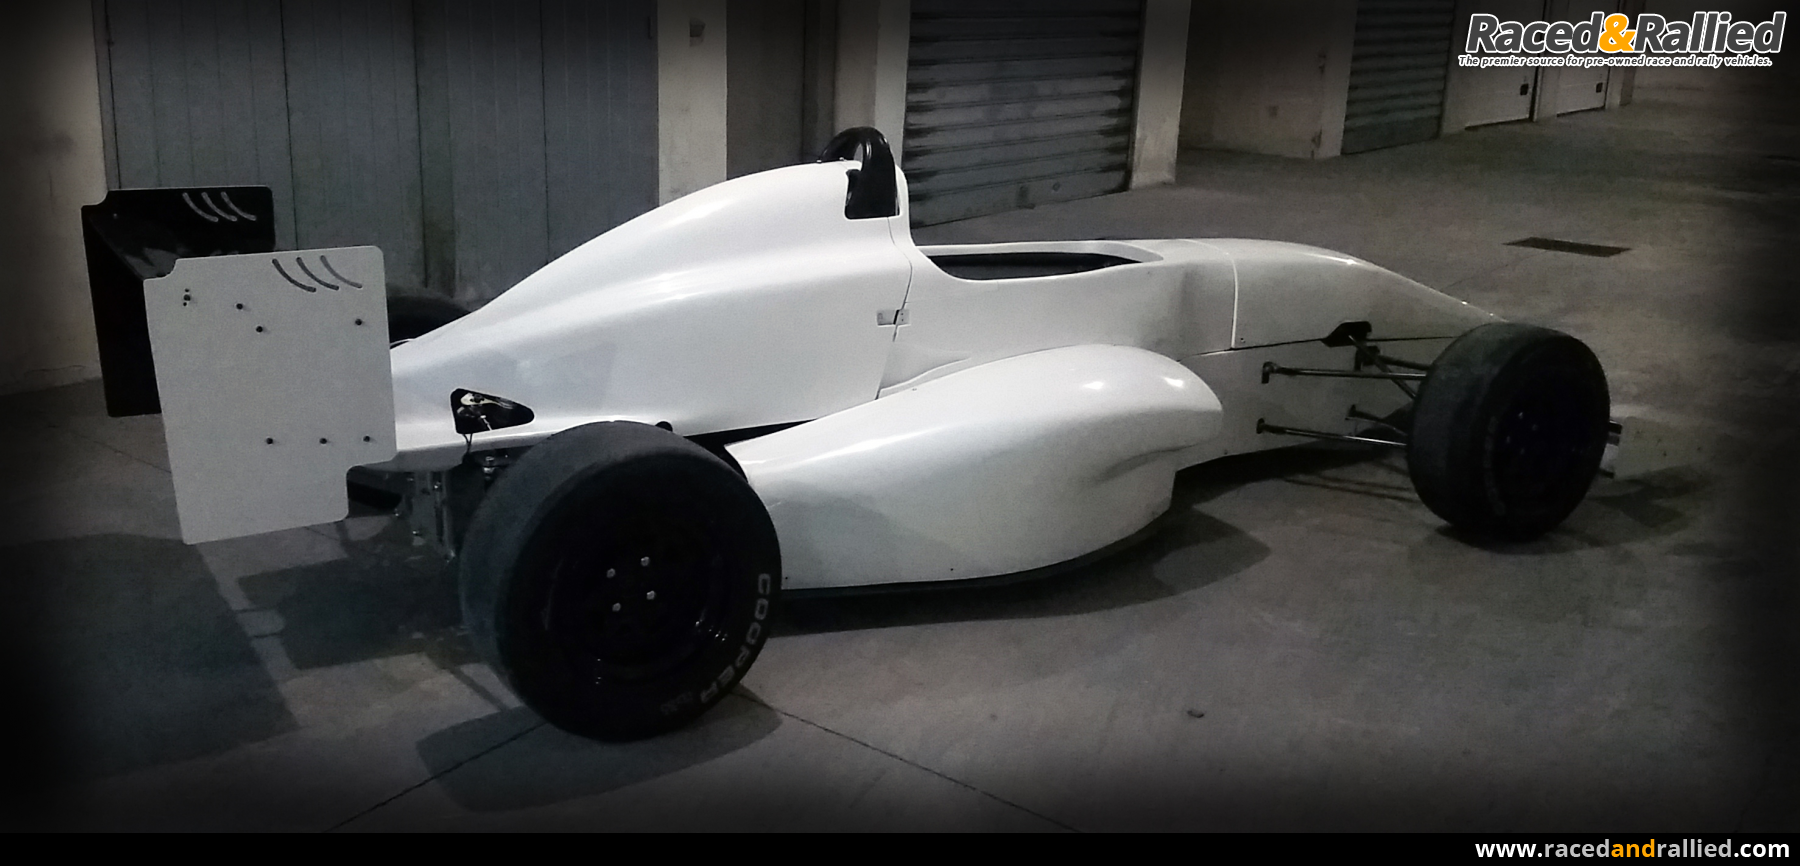 Classic Single Seater Race Cars For Sale